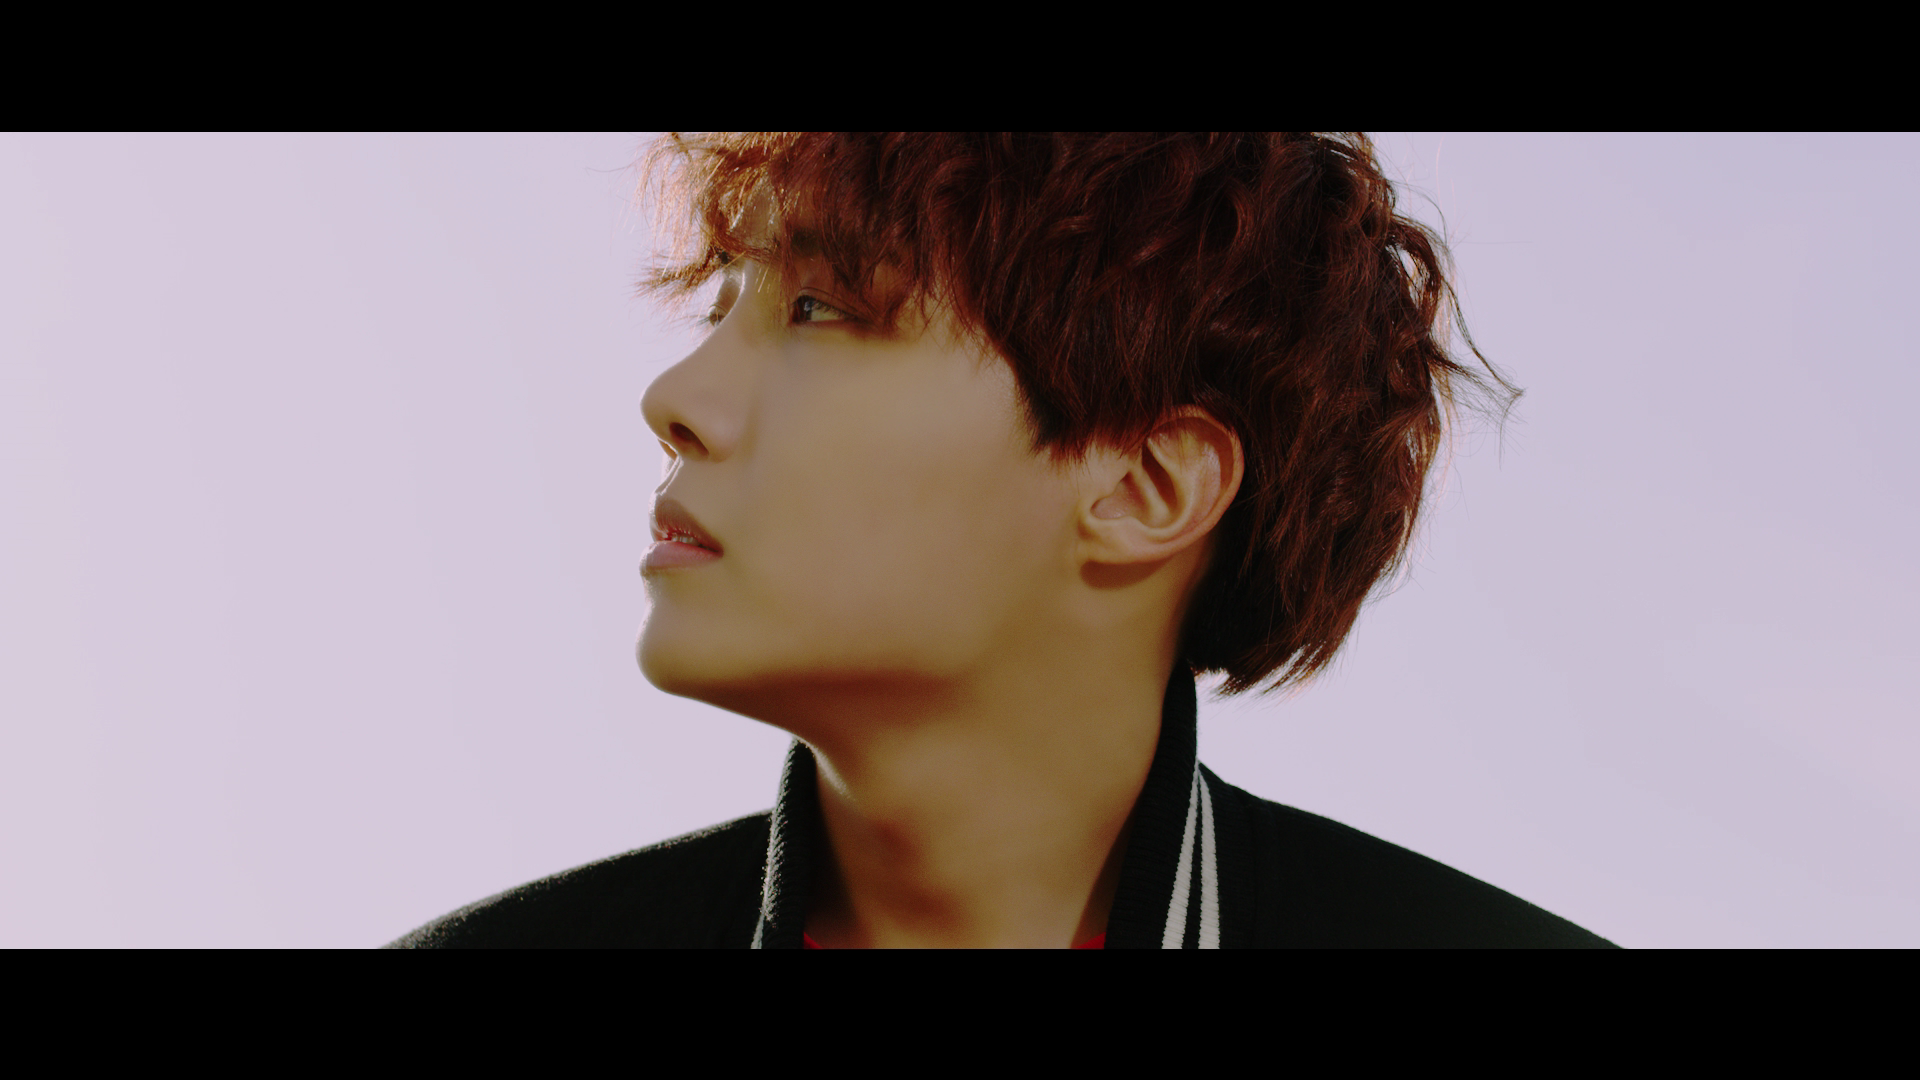 j-hope 'Airplane' MV